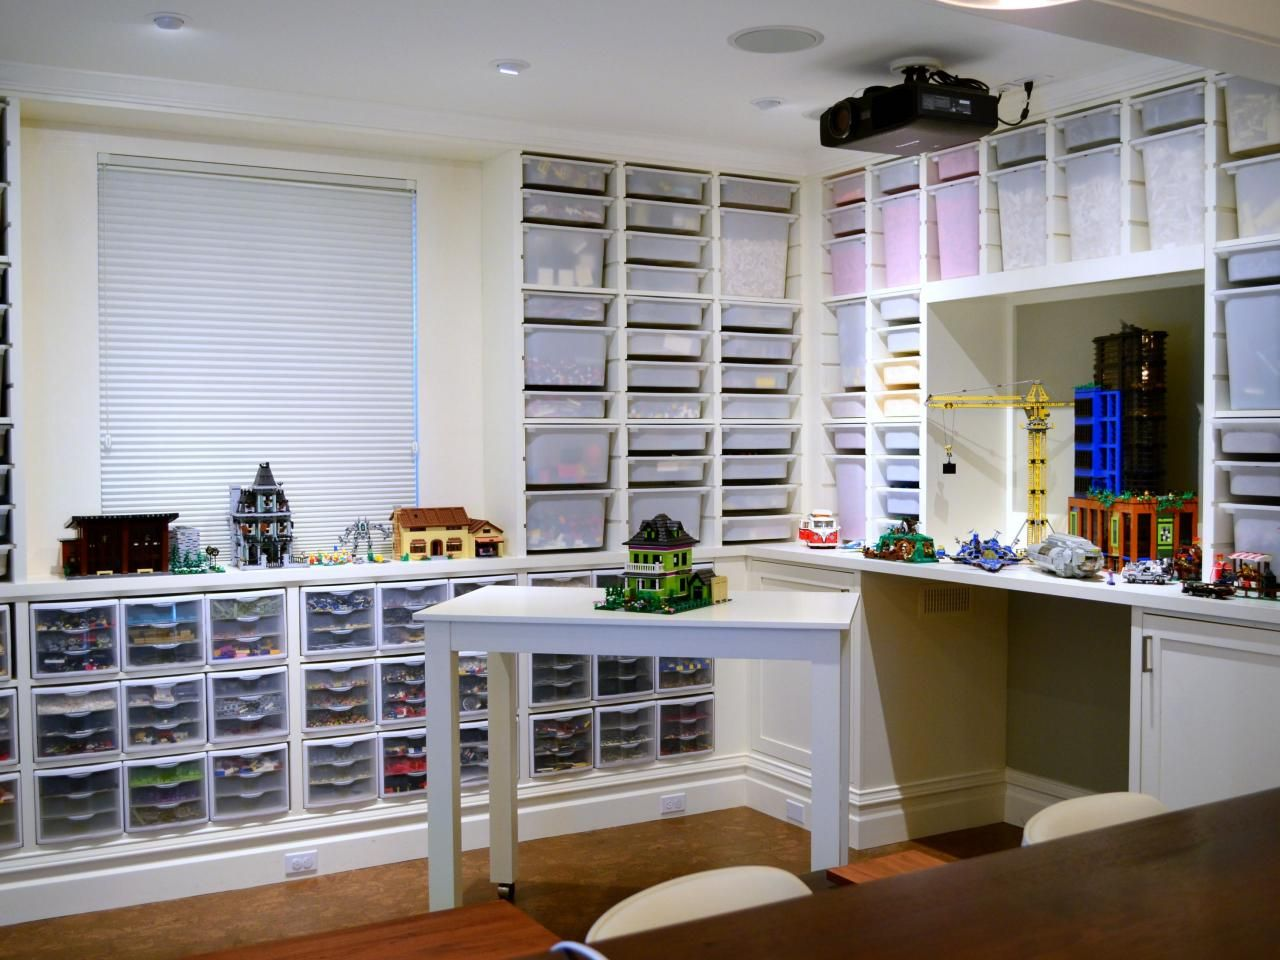 Playroom storage systems - 15 Organization Ideas To Make Your Playroom Adult Friendly